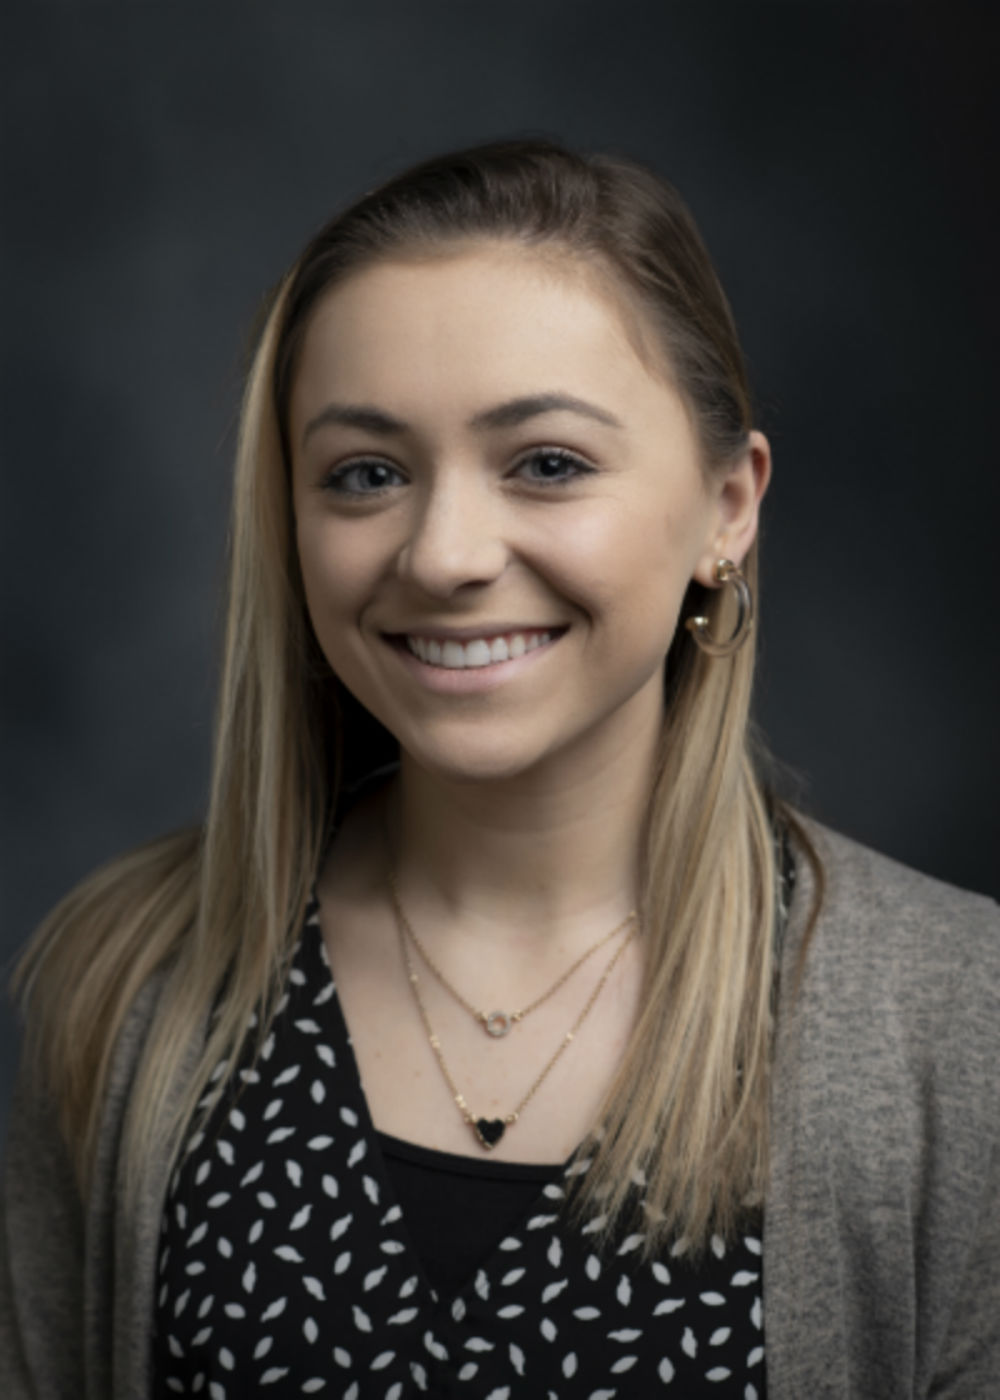 Allie Buszinski headshot